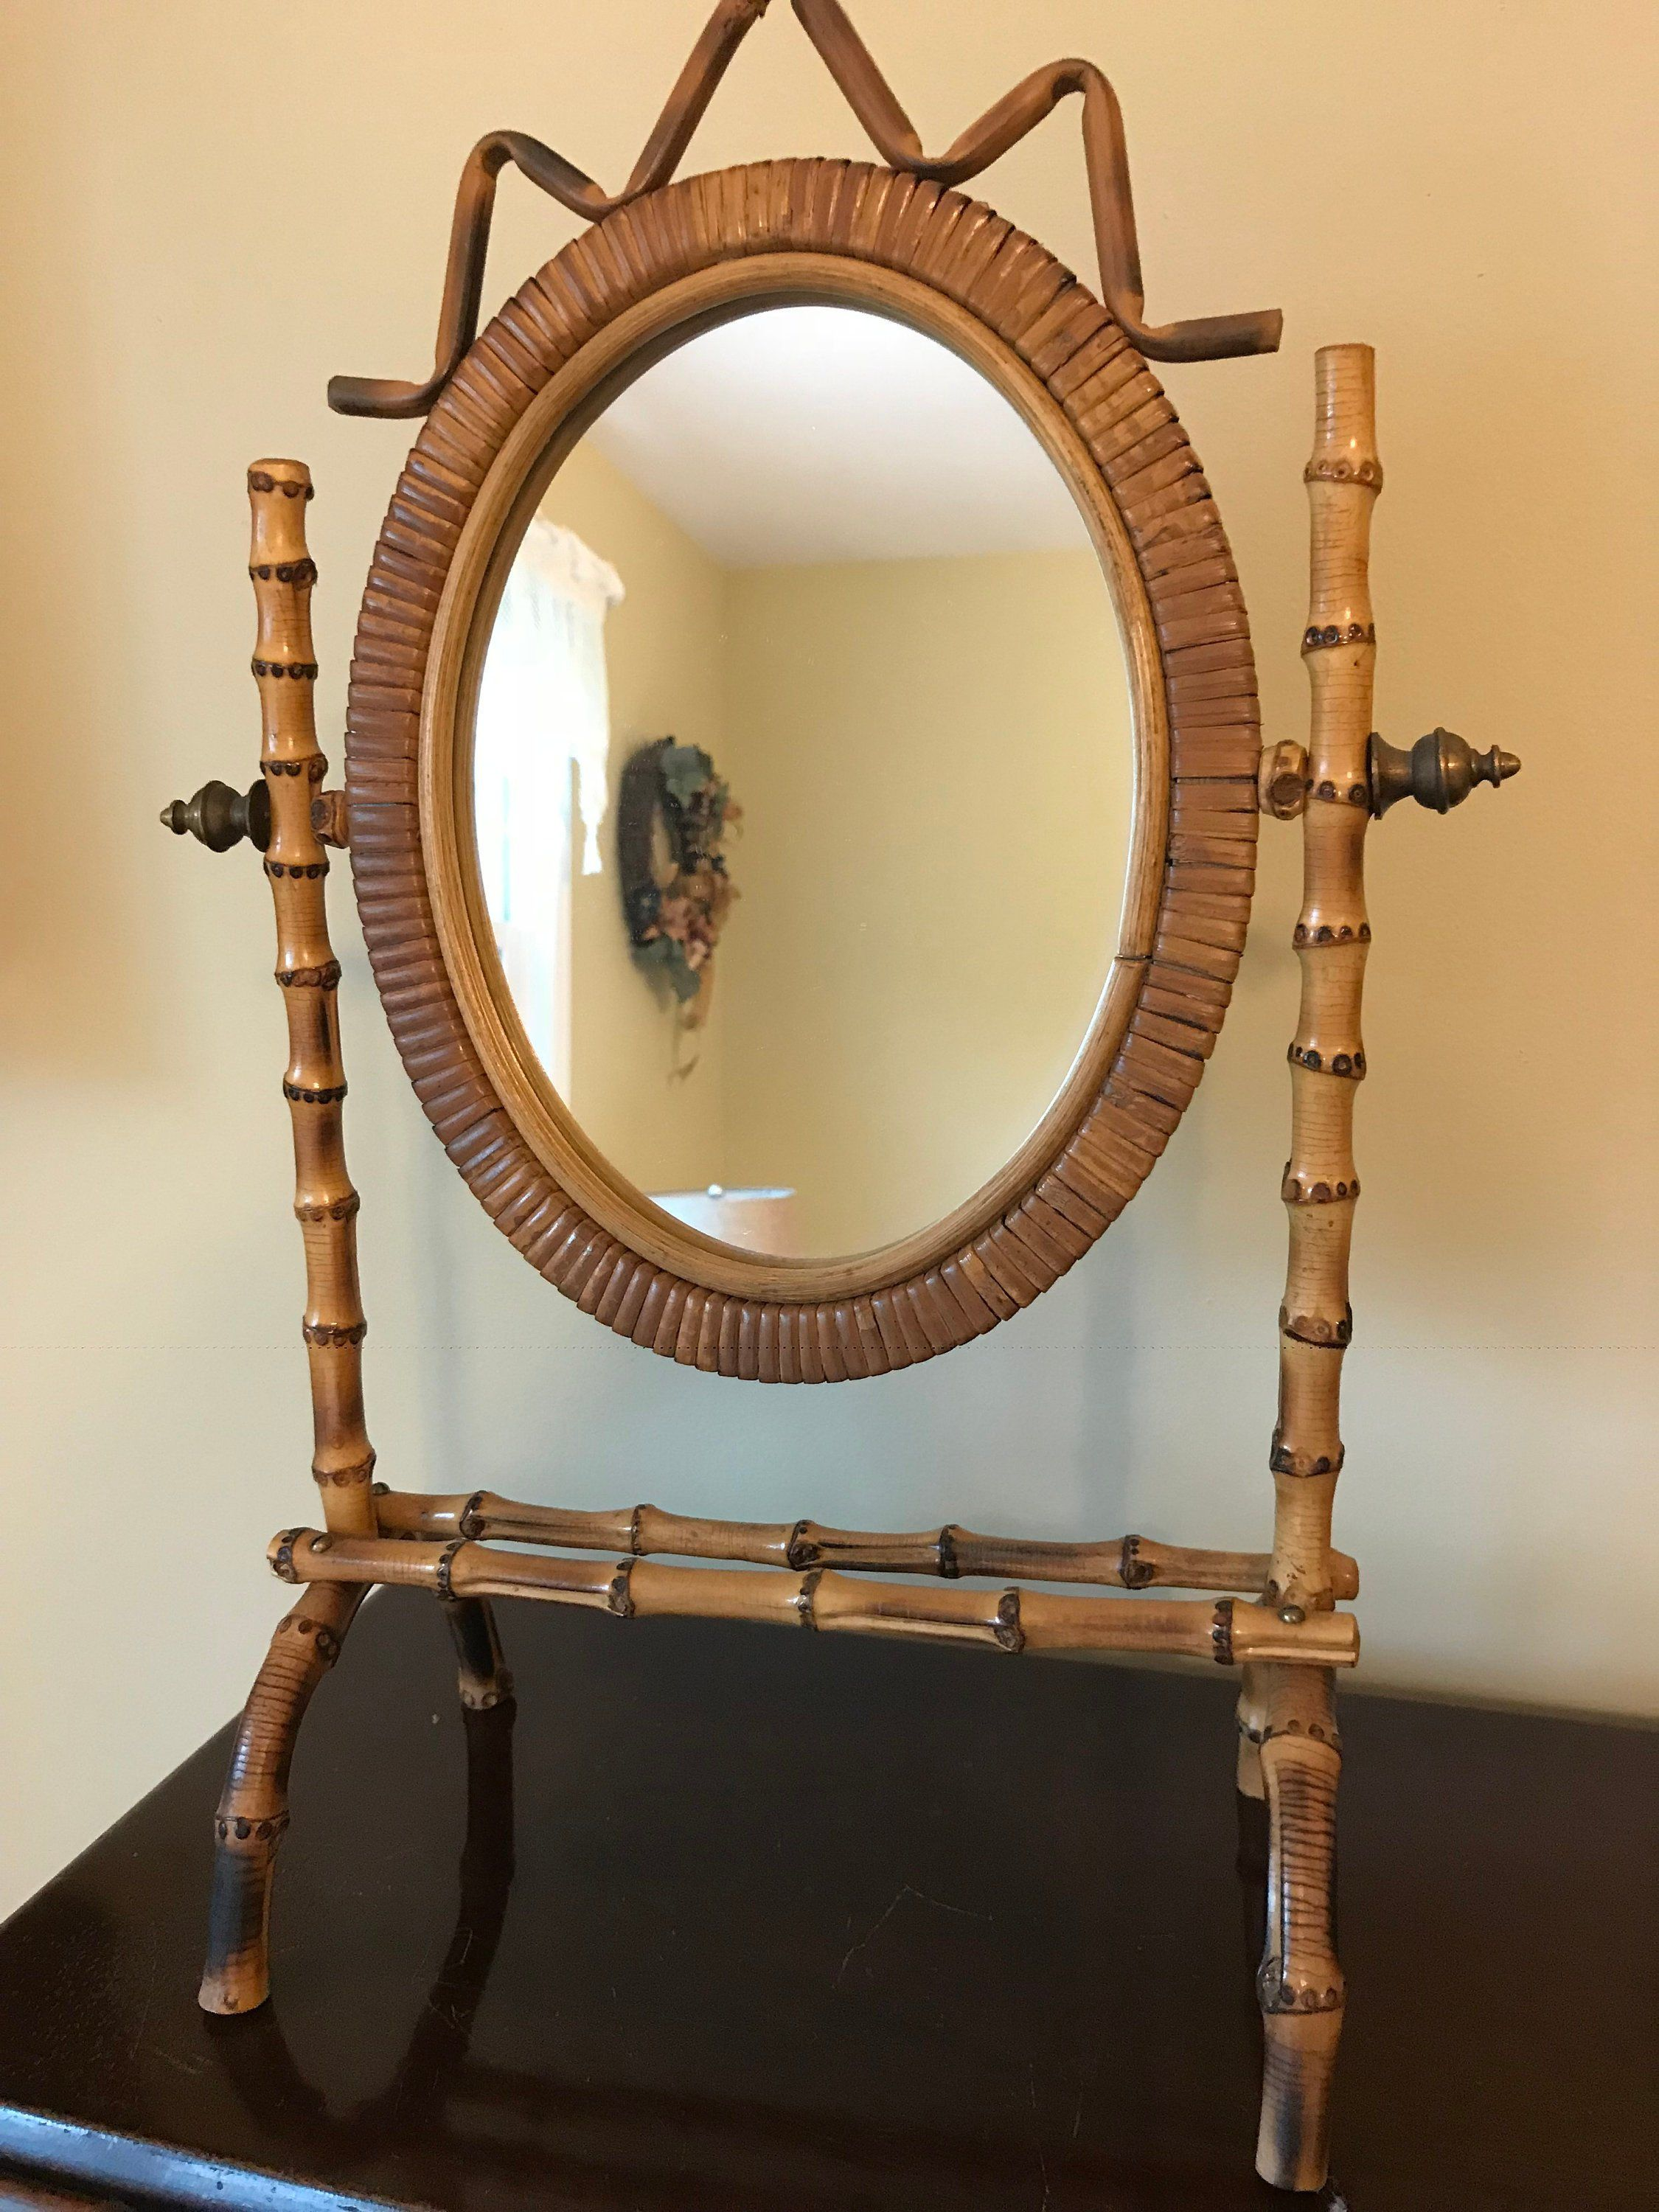 Rare Antique Victorian Bamboo Tilting Tabletop Psyche Mirror Etsy Bamboo Mirror Rare Antique Vintage Dressing Tables